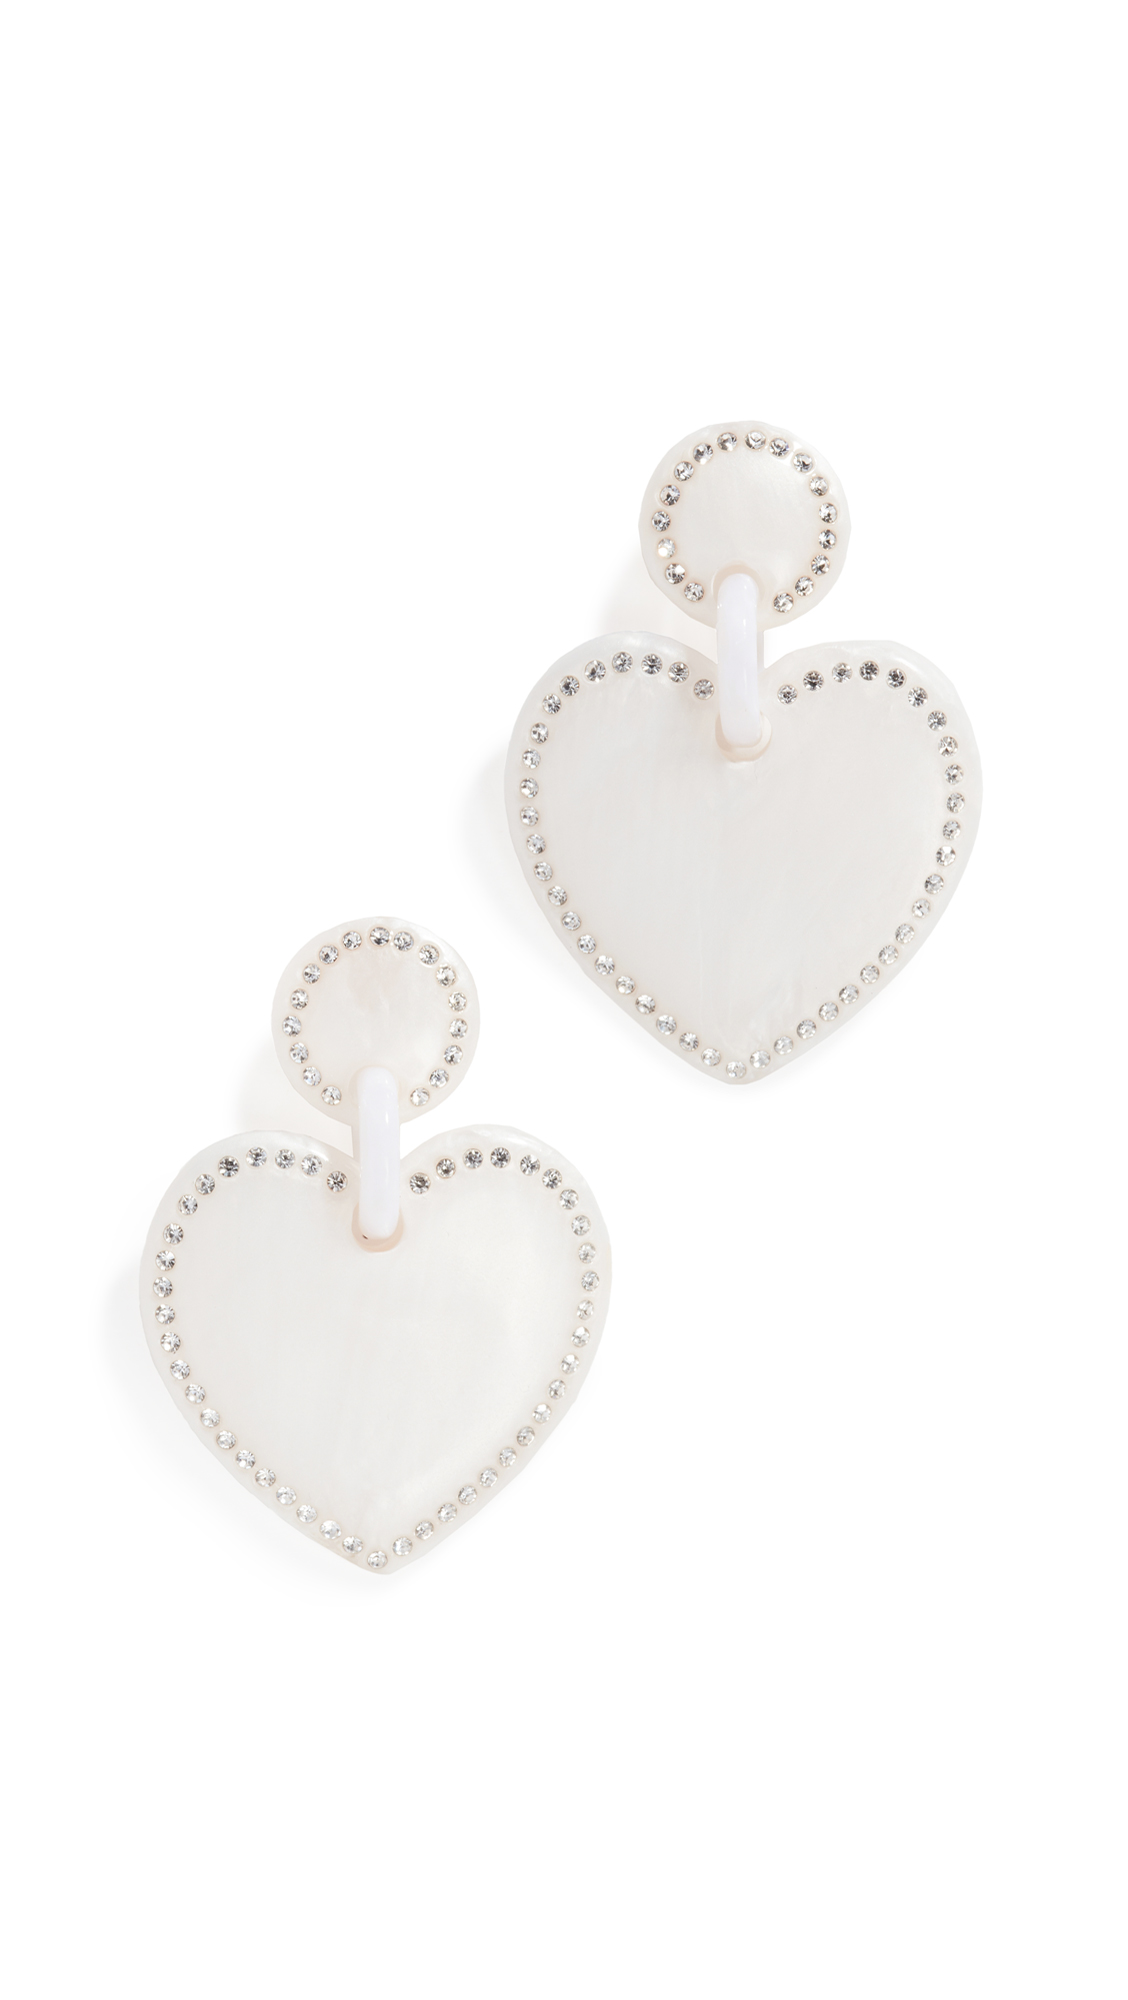 Lele Sadoughi JEWELED STITCHED HEART EARRINGS